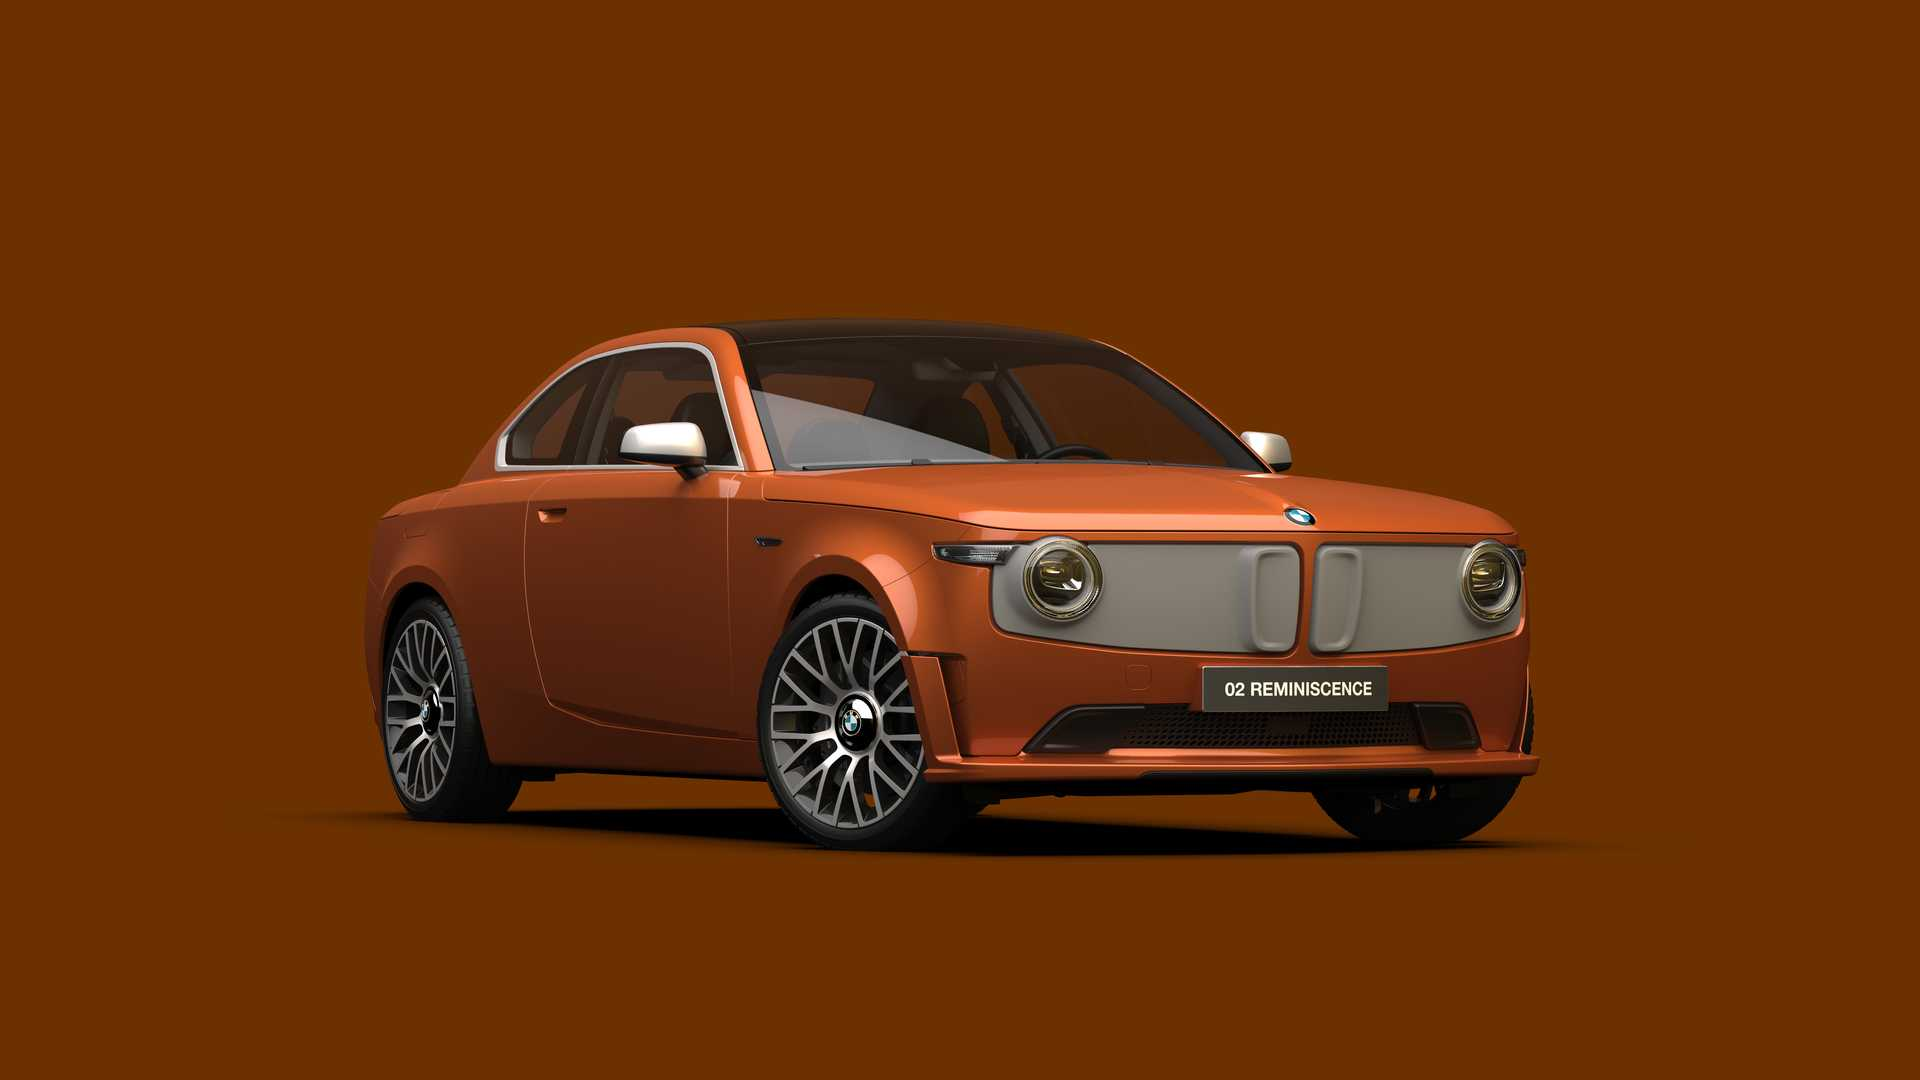 BMW 02 Reminiscence Concept rendering